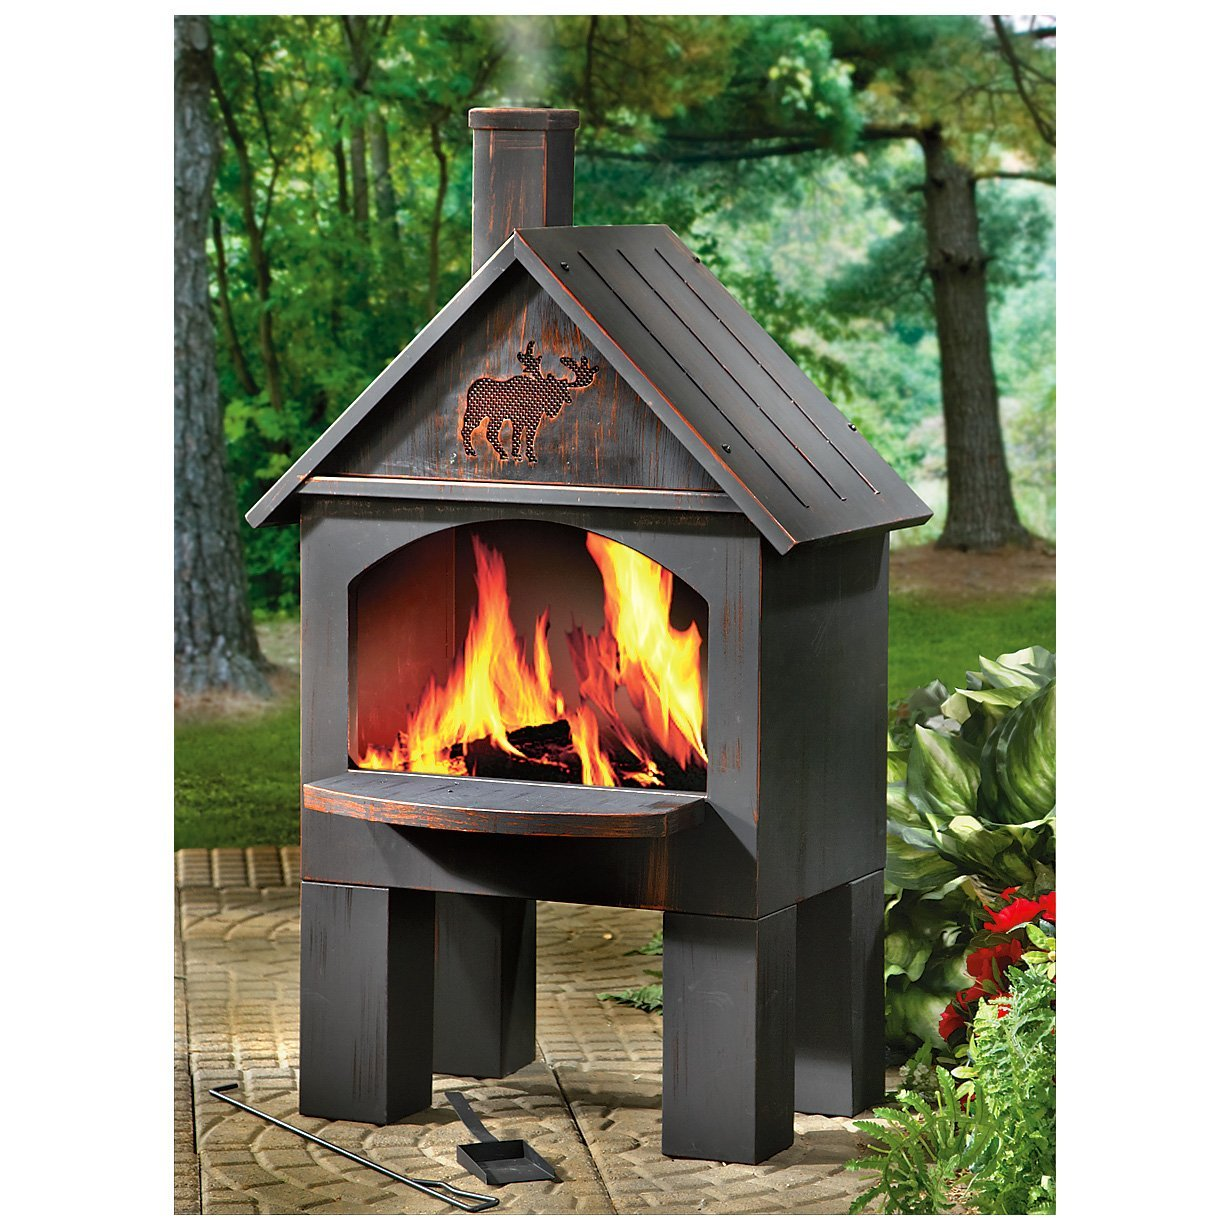 Affordable Outdoor Metal Fireplace — Rickyhil Outdoor Ideas on Quillen Steel Outdoor Fireplace id=35547